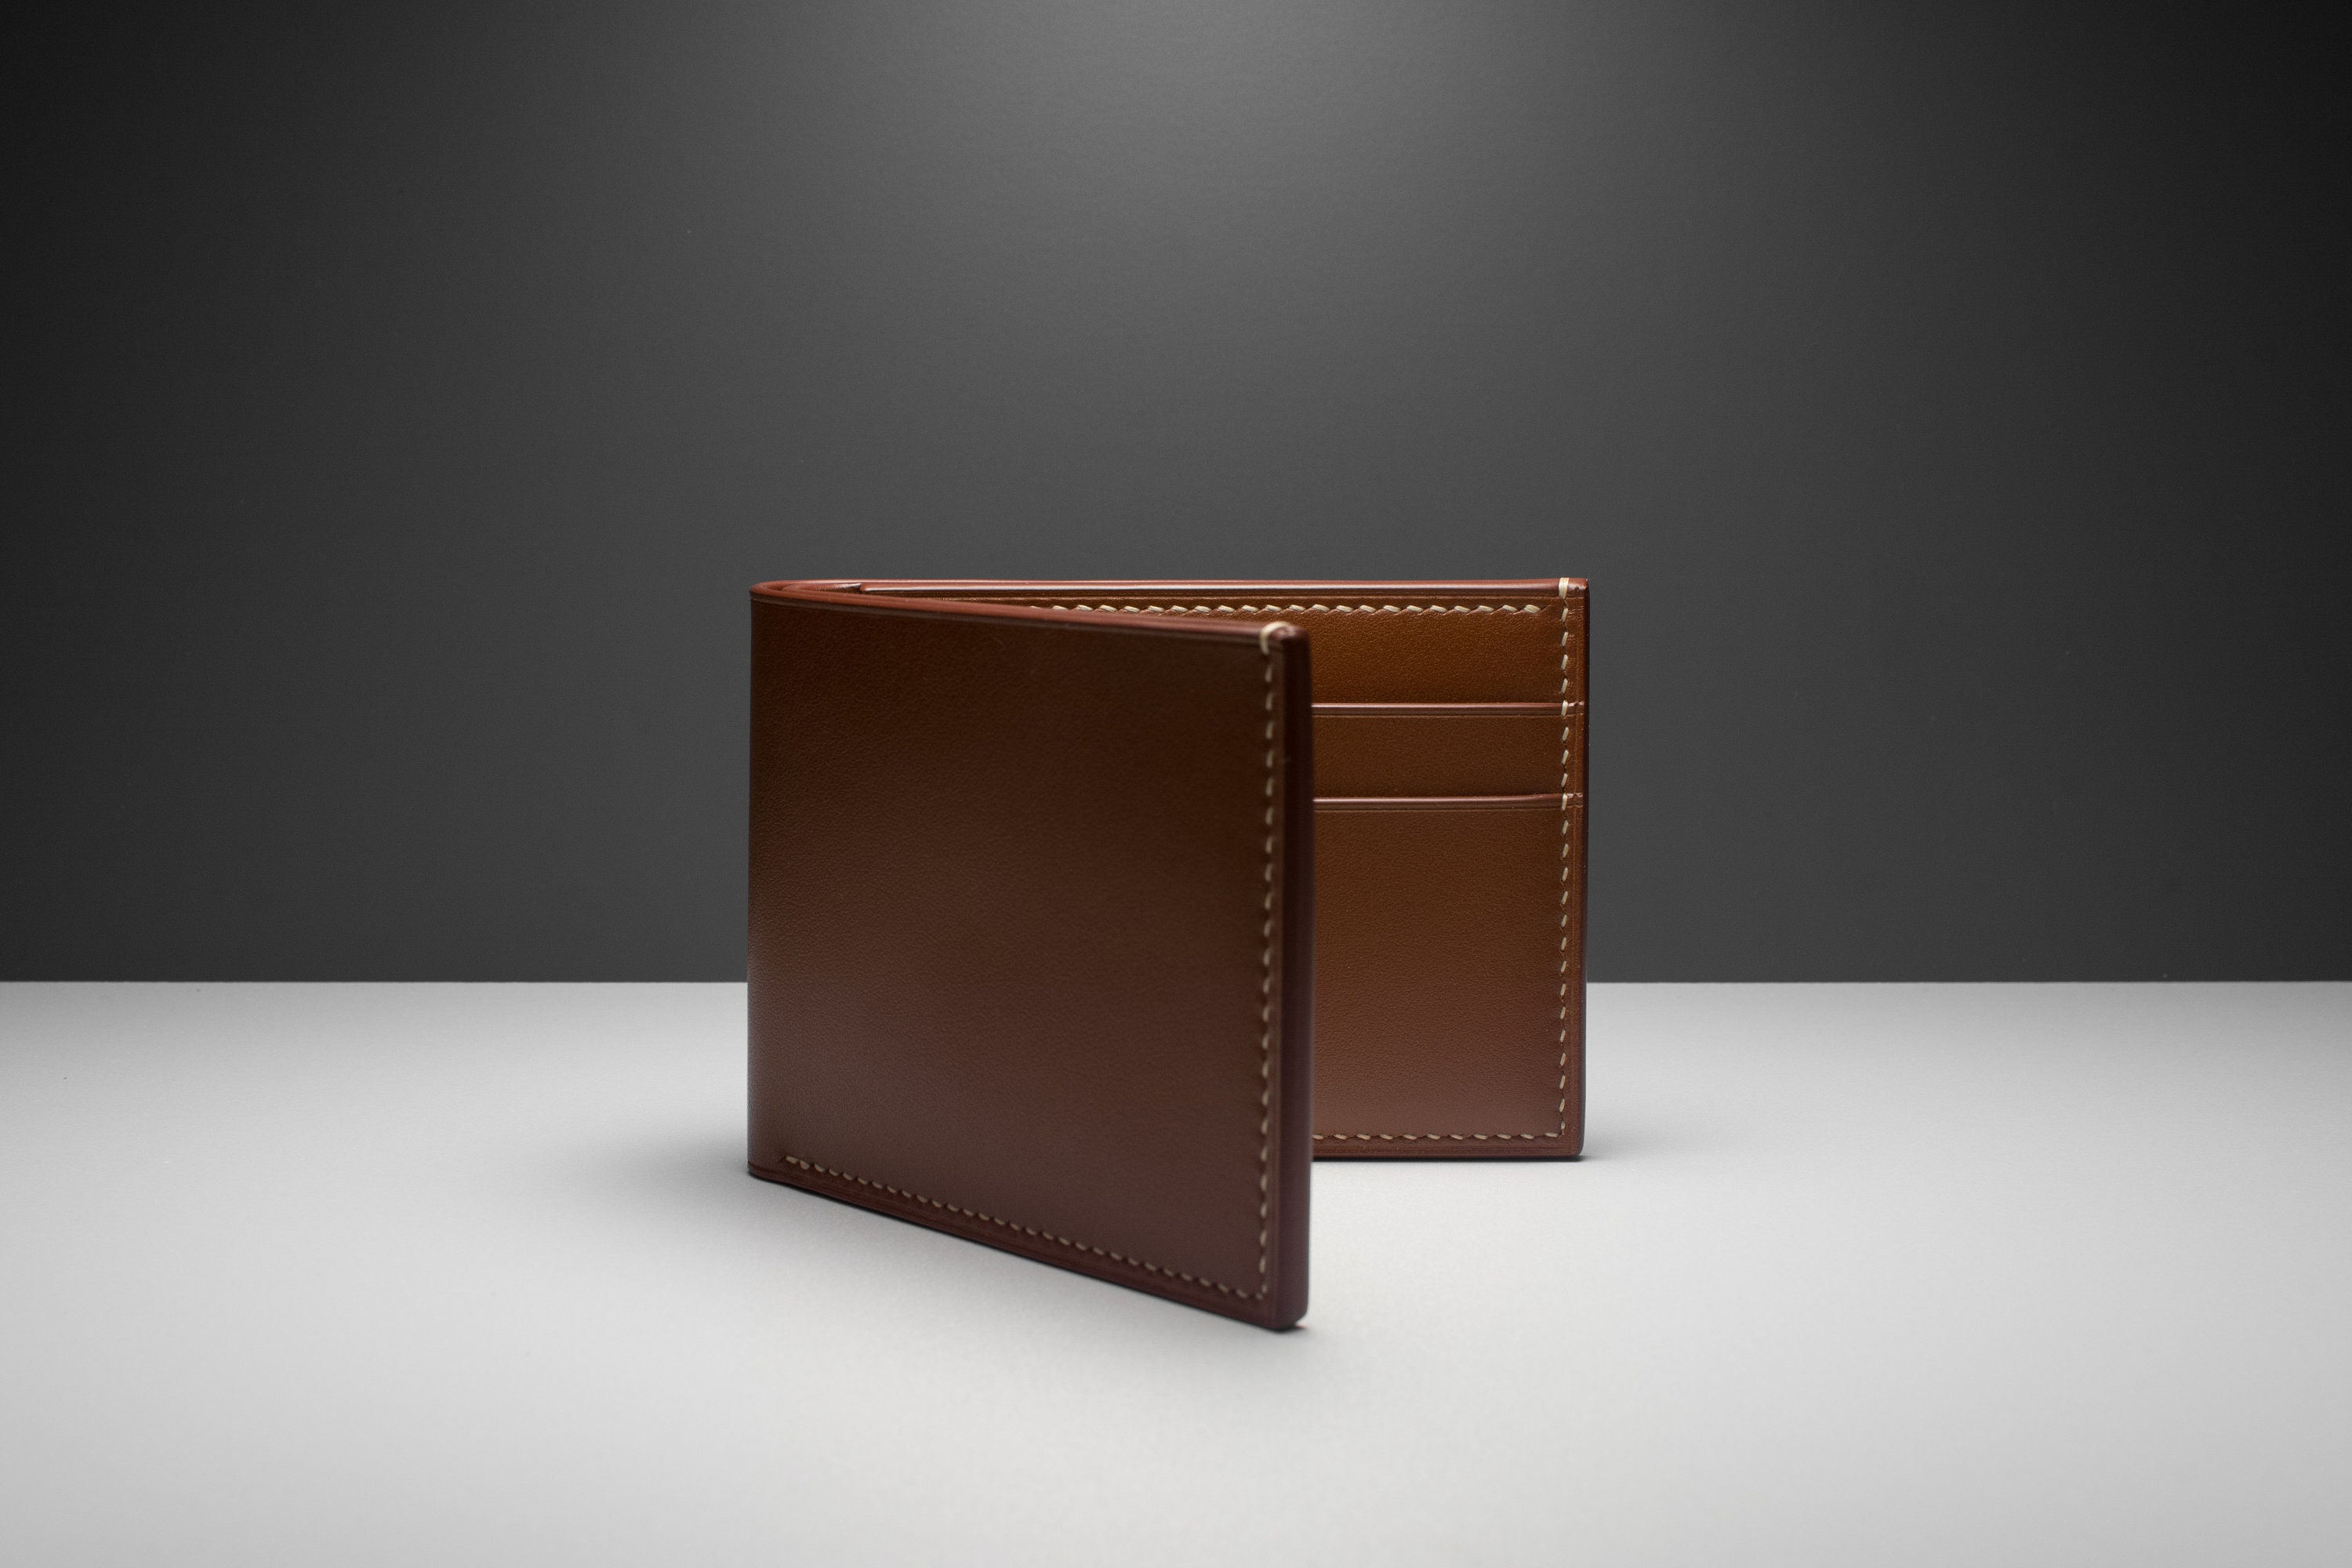 89c5d046657 Hand-stitched Leather Classic Billfold Wallet